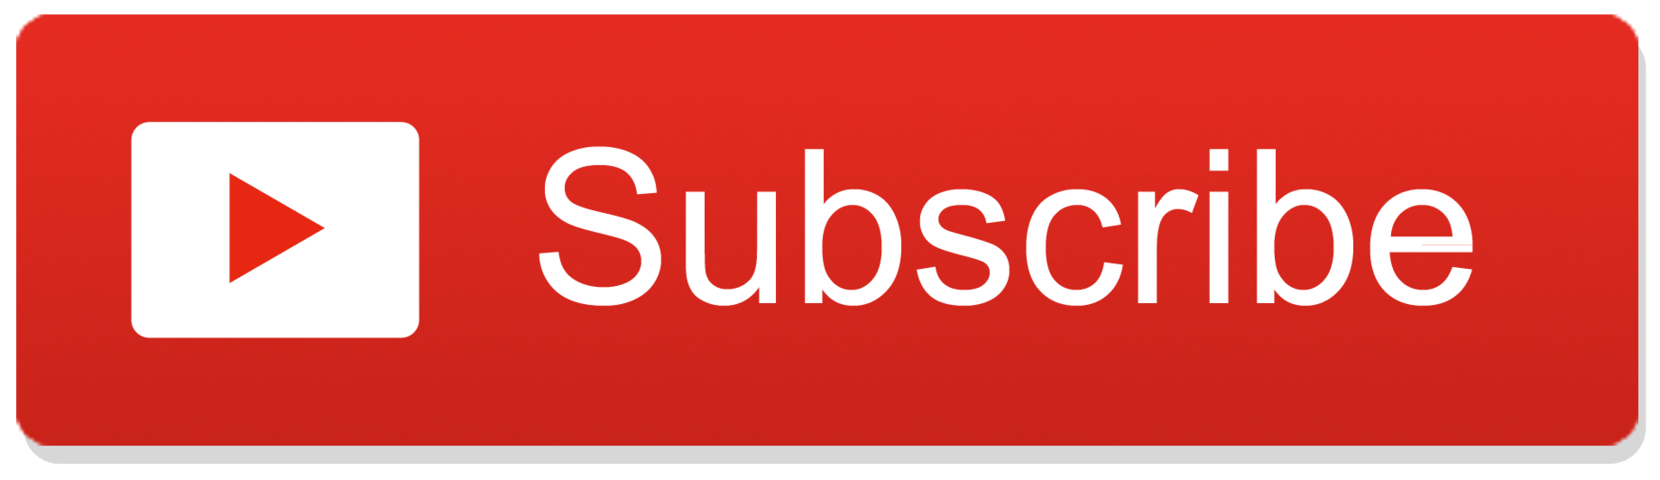 Subscribe Youtube Button transparent PNG.